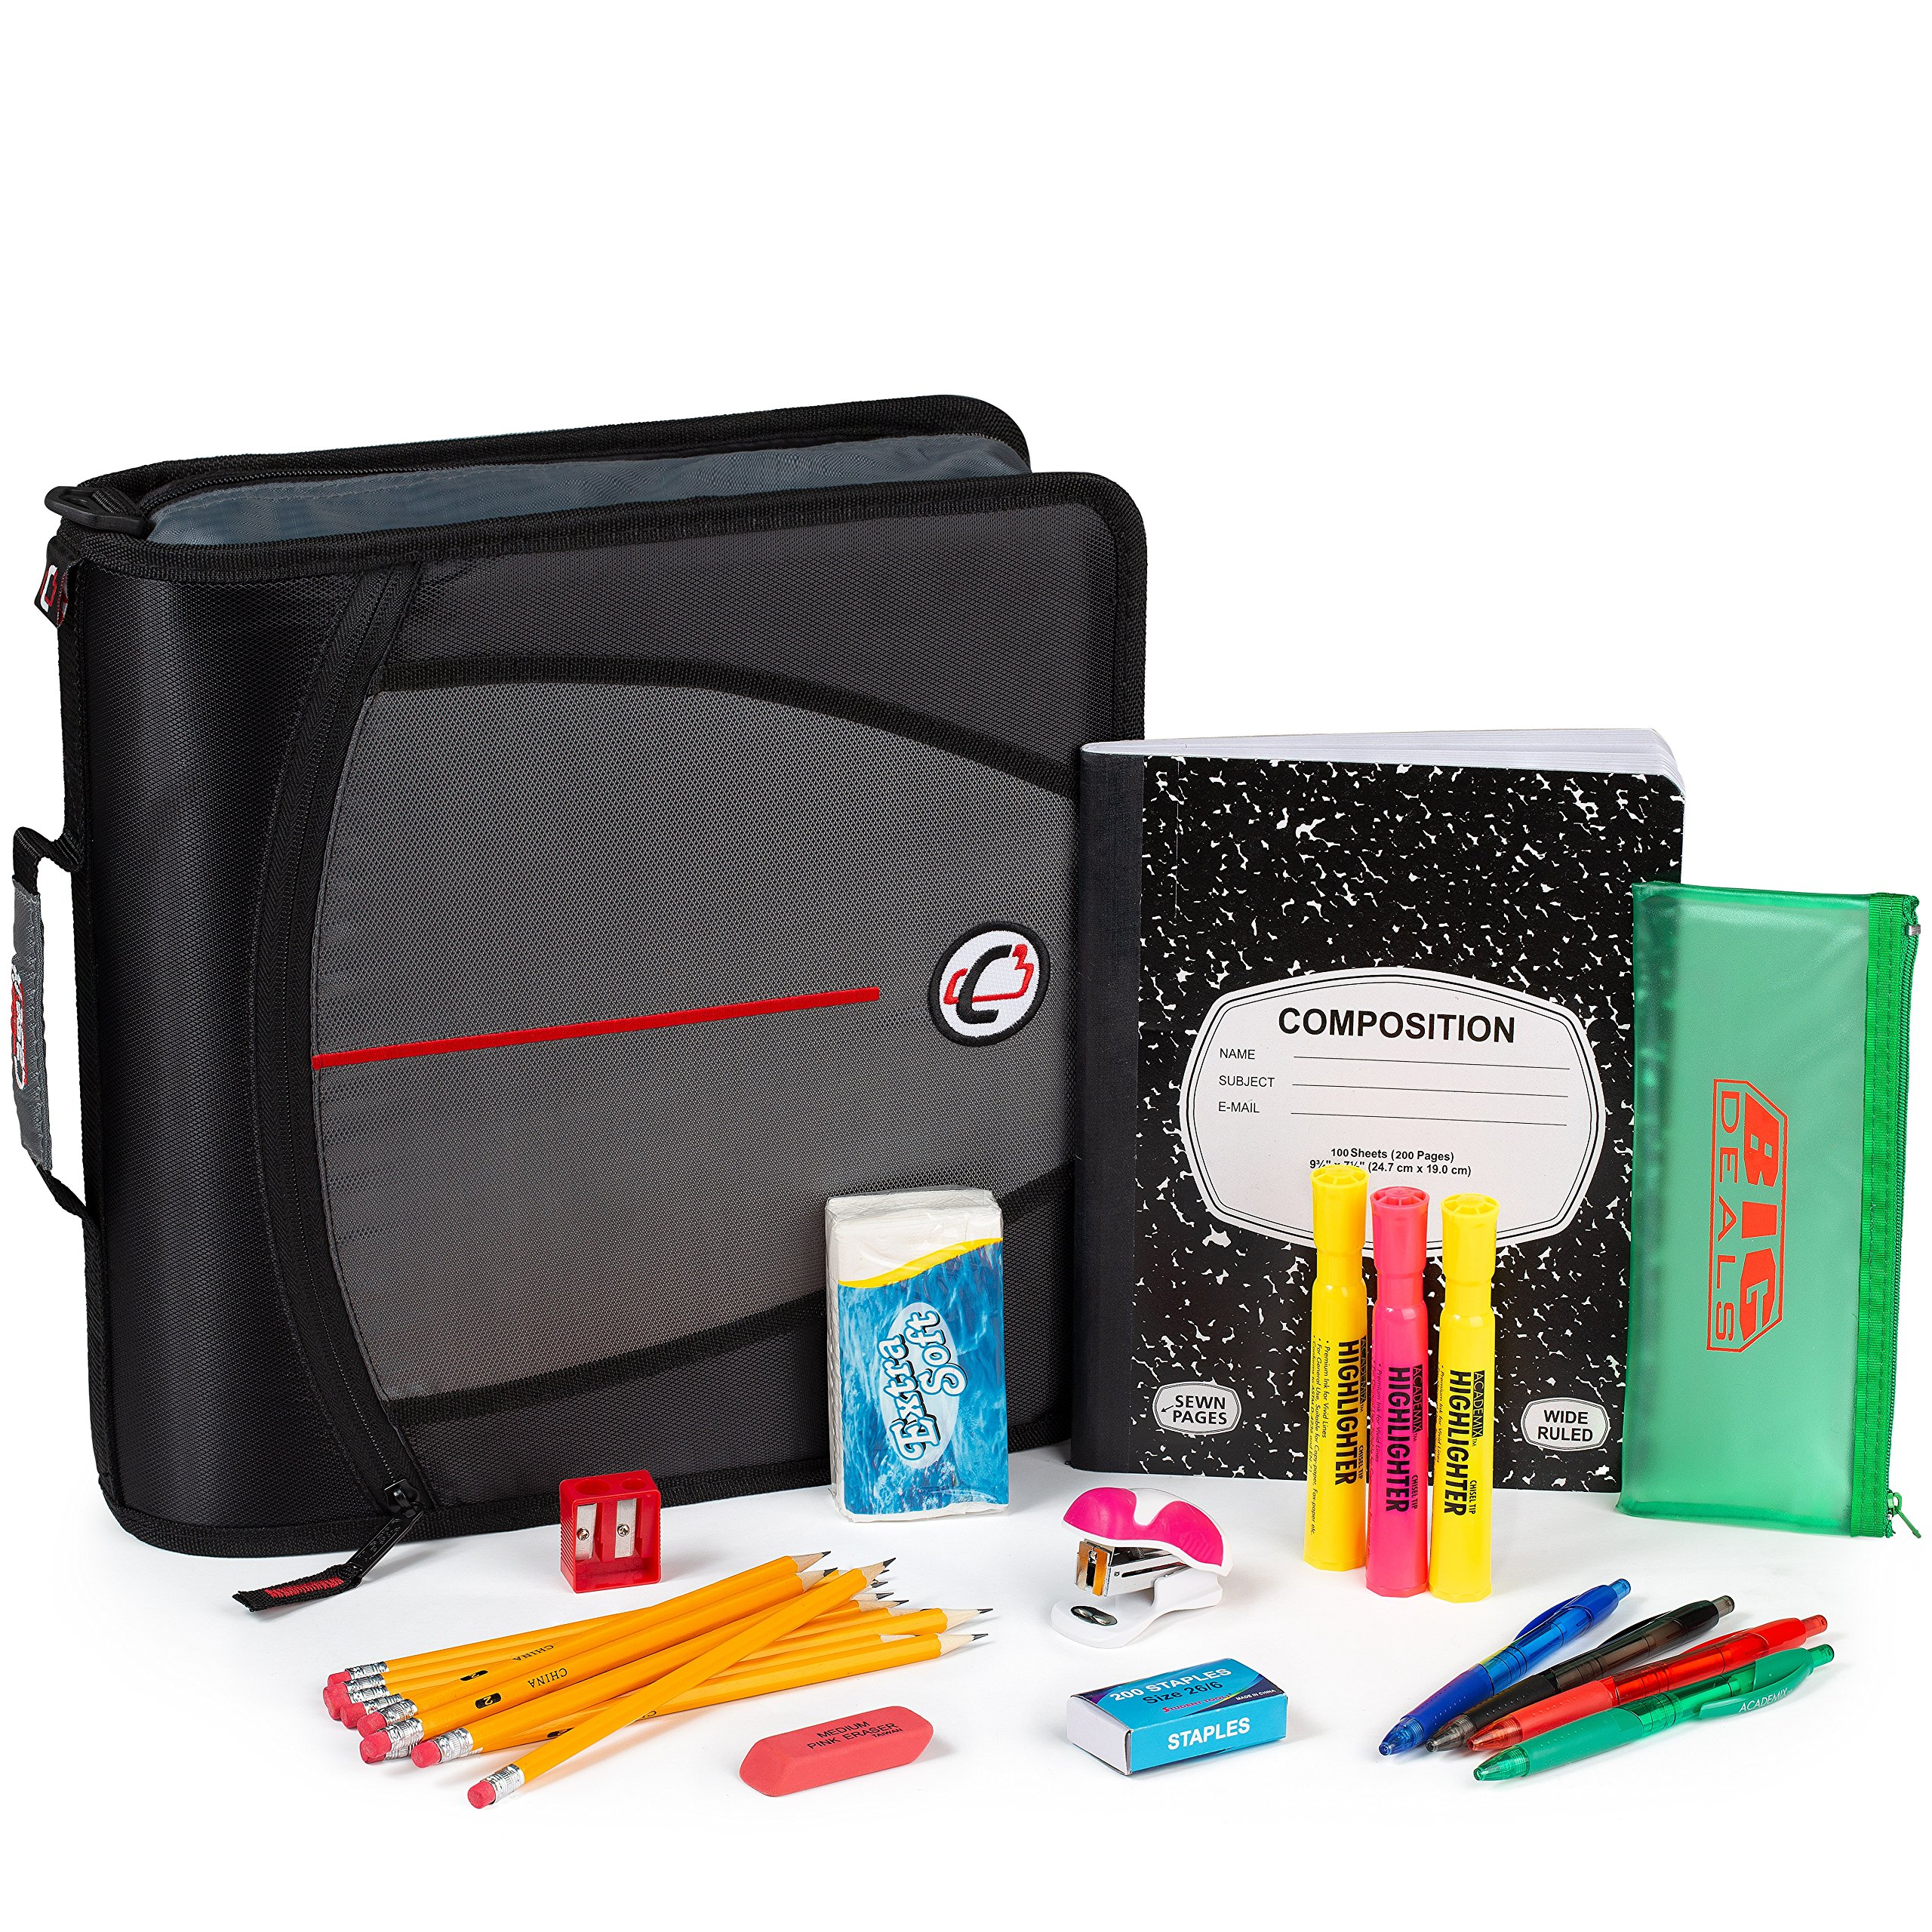 Back to School Supply Bundle, of School Supplies for All Grade Levels - Perfect for High School & College Students – 3 Ring Case it binders, Pencils, Pens, Highlighters, Notebook and More by Sooboo (Image #1)